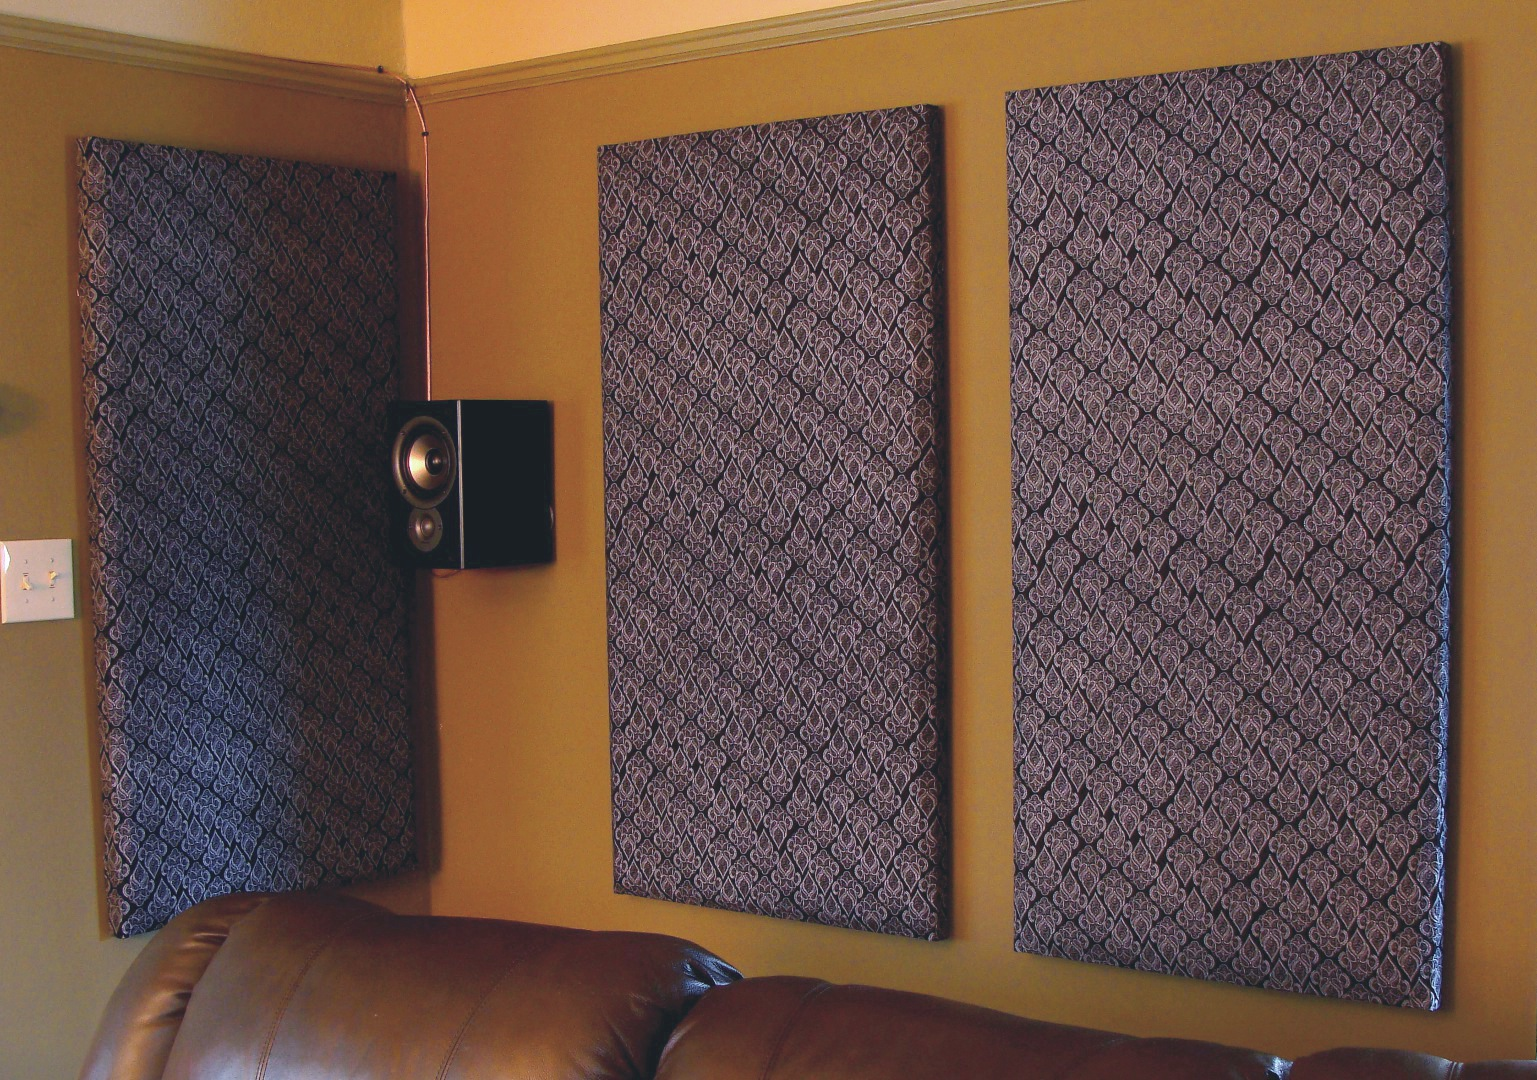 Swell How To Build Your Own Acoustic Panels Diy Largest Home Design Picture Inspirations Pitcheantrous